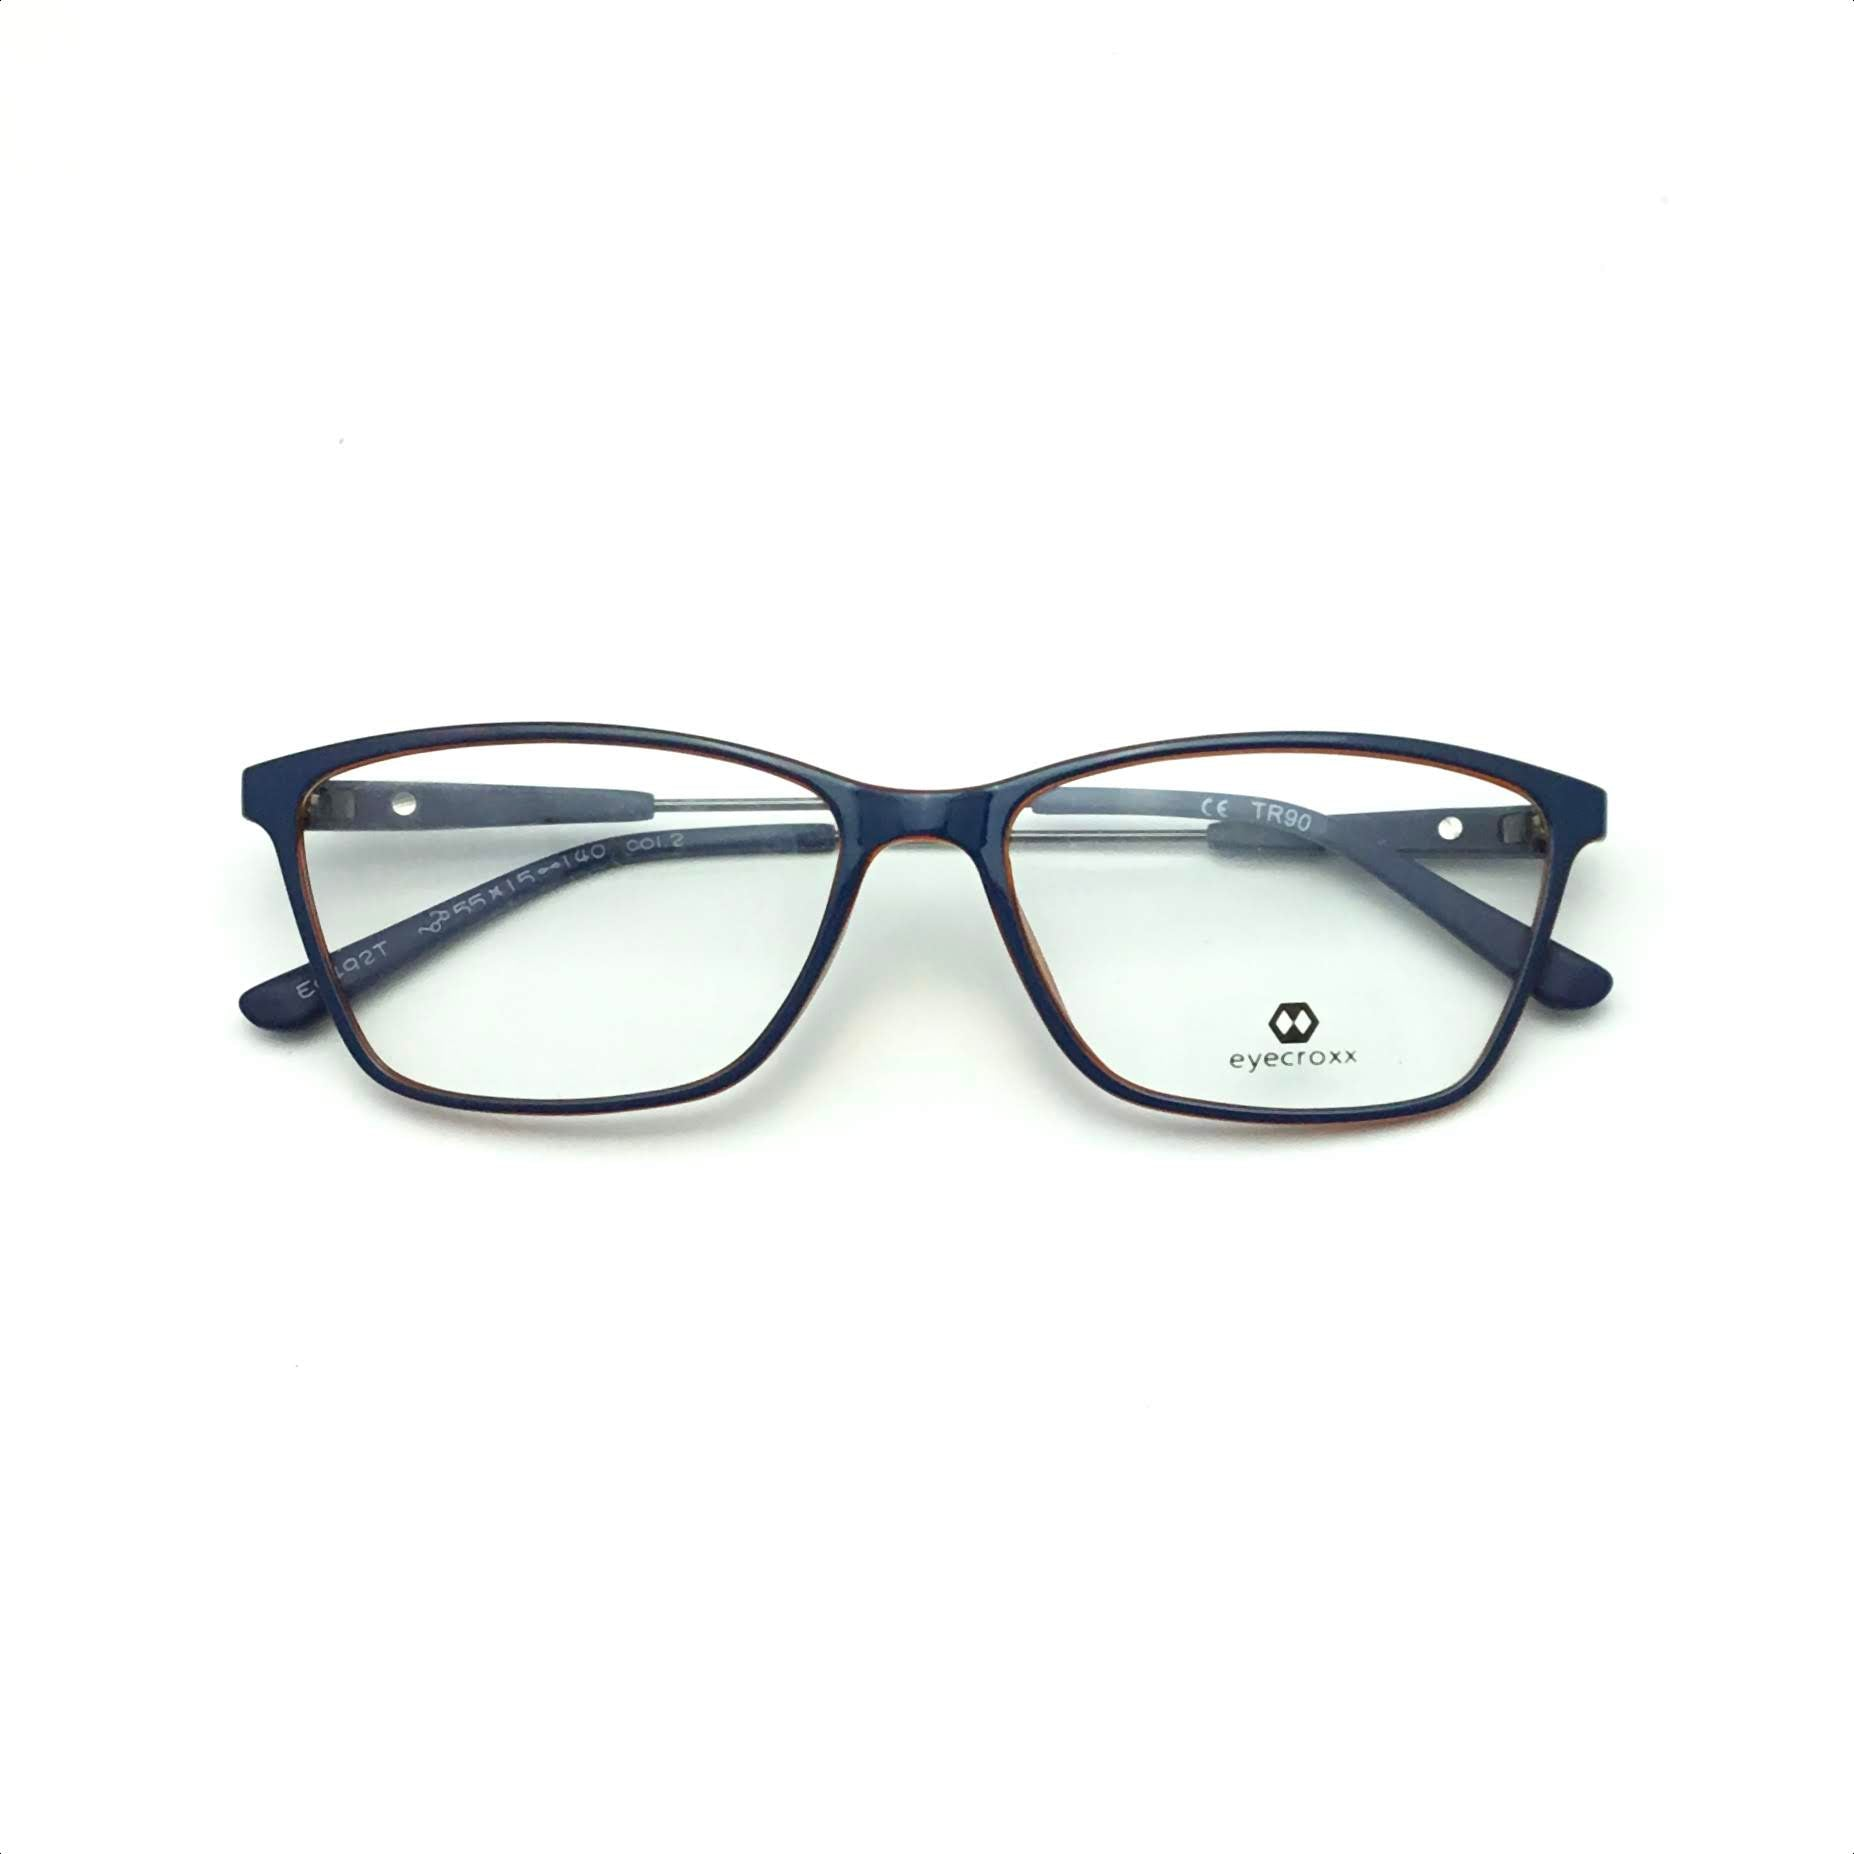 Eye Crox Glasses $149 SPECIAL